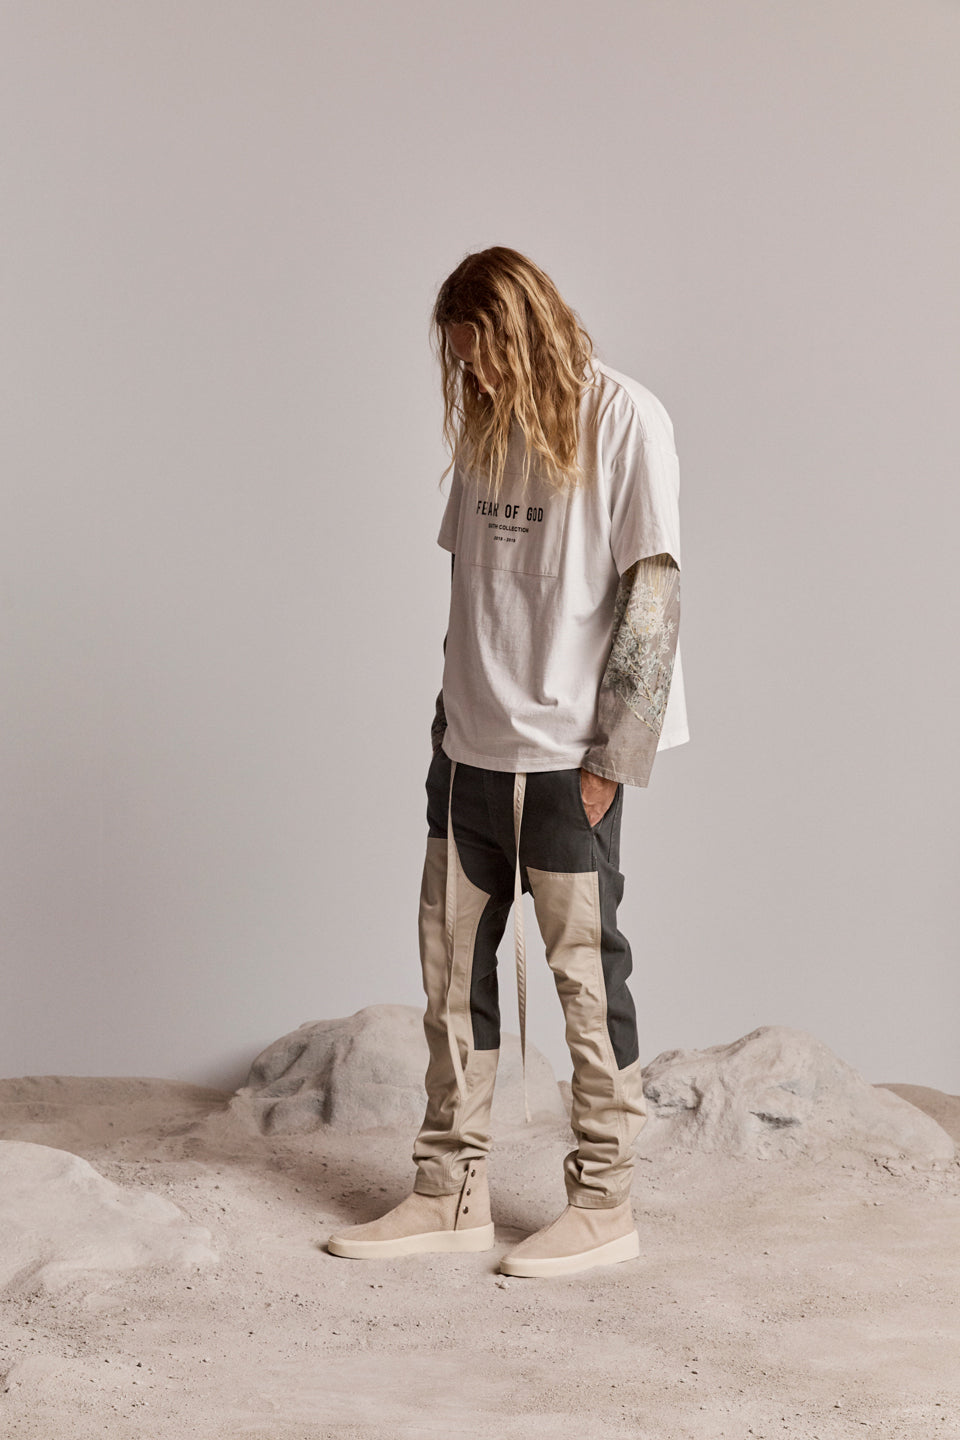 Sixth Collection | Lookbook | Fear of God